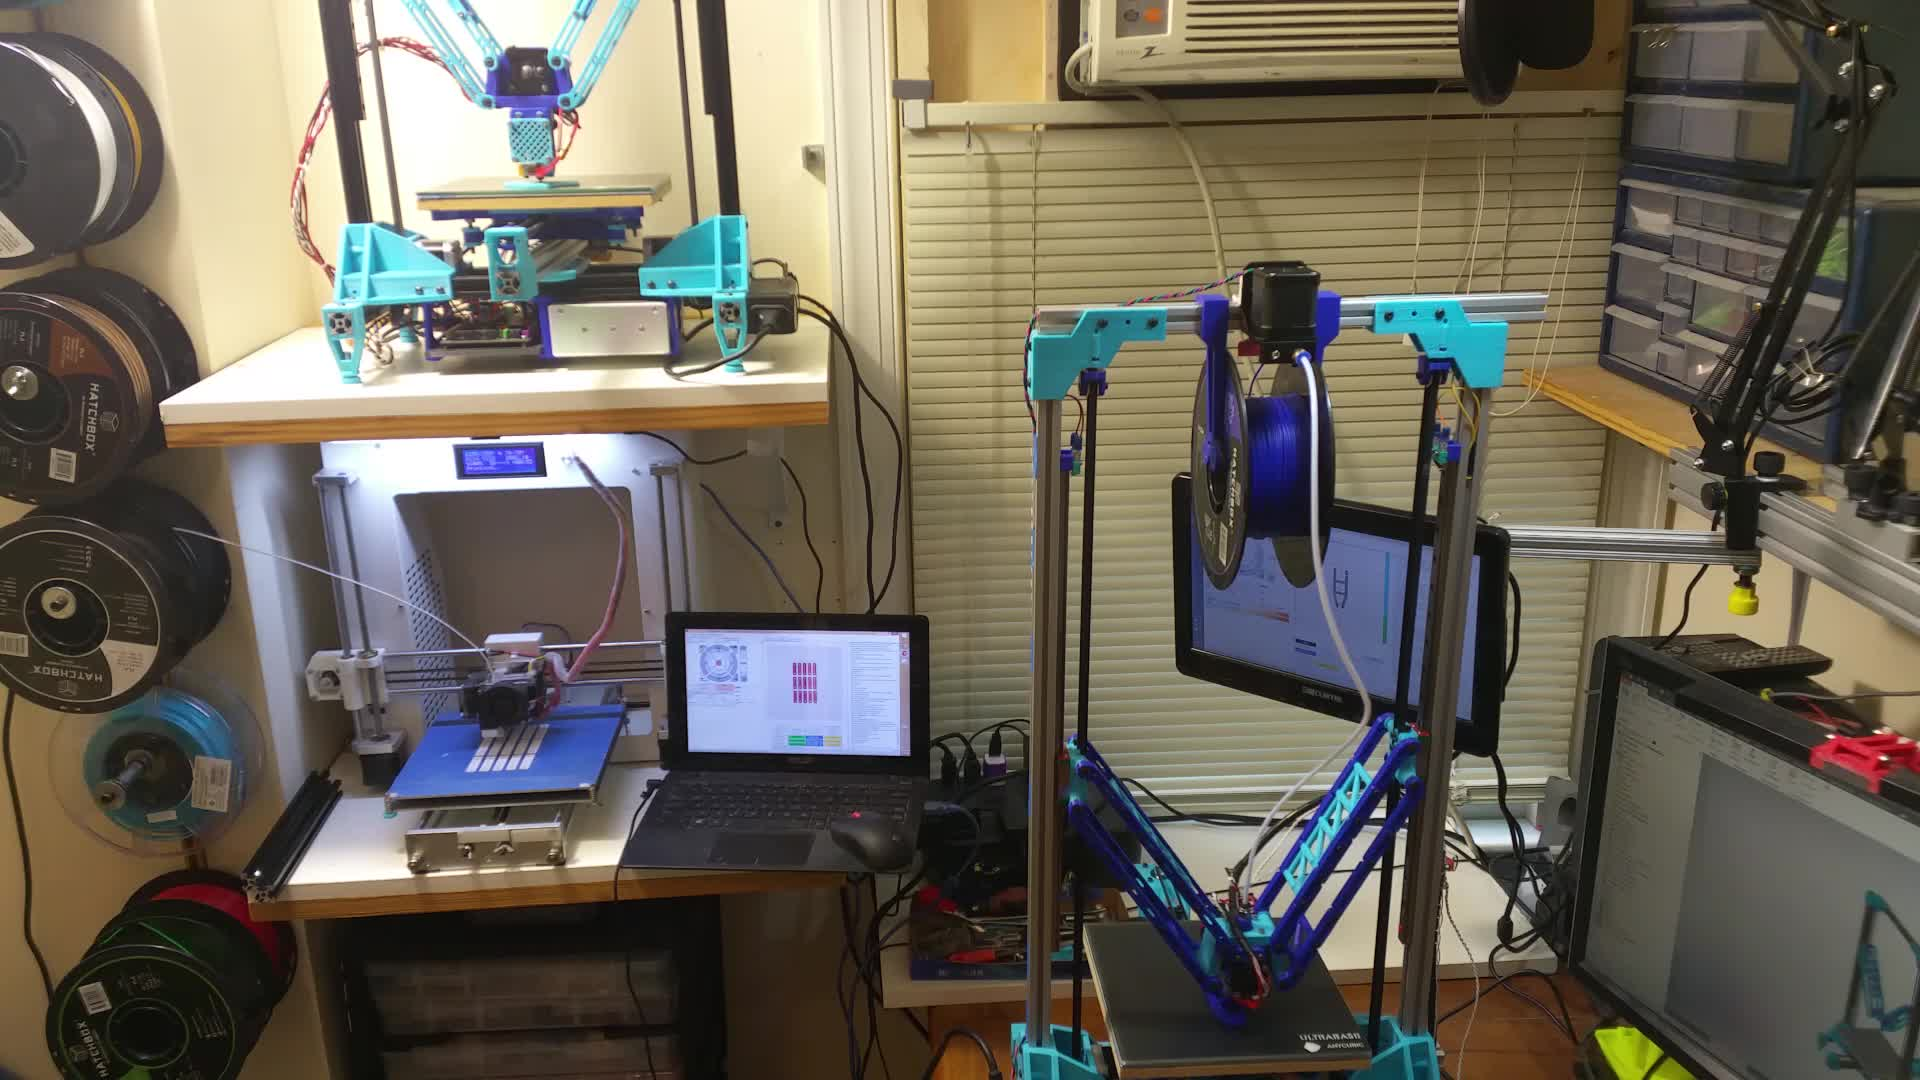 3D Printer, 3D Printing, 3DPrinter, 3DPrinting, Deltesian, Double Deltesian with a Side of Cartesian GIFs